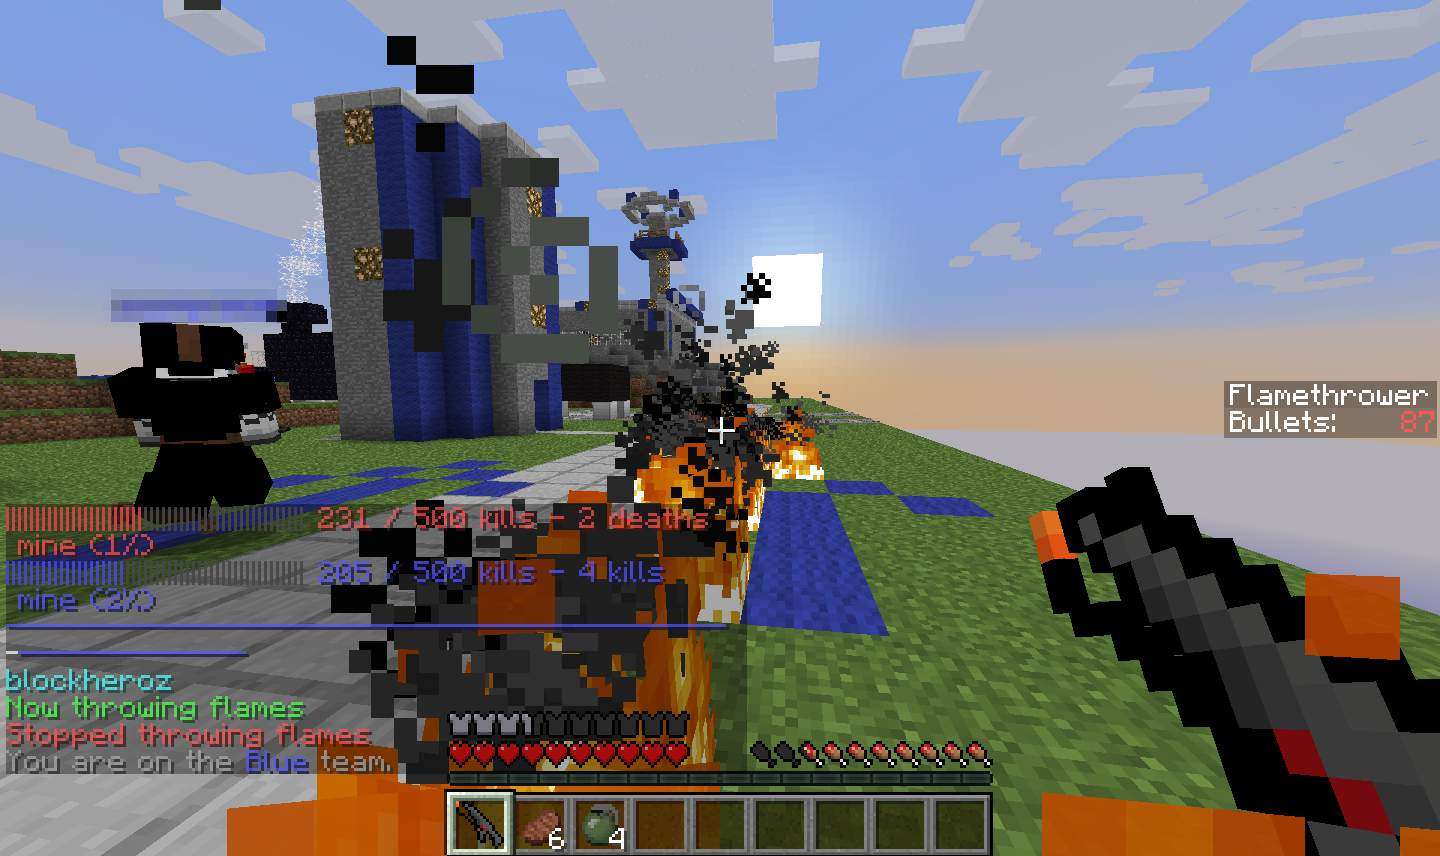 teamdeathmatch-minecraft-headshot-server-grenade-006